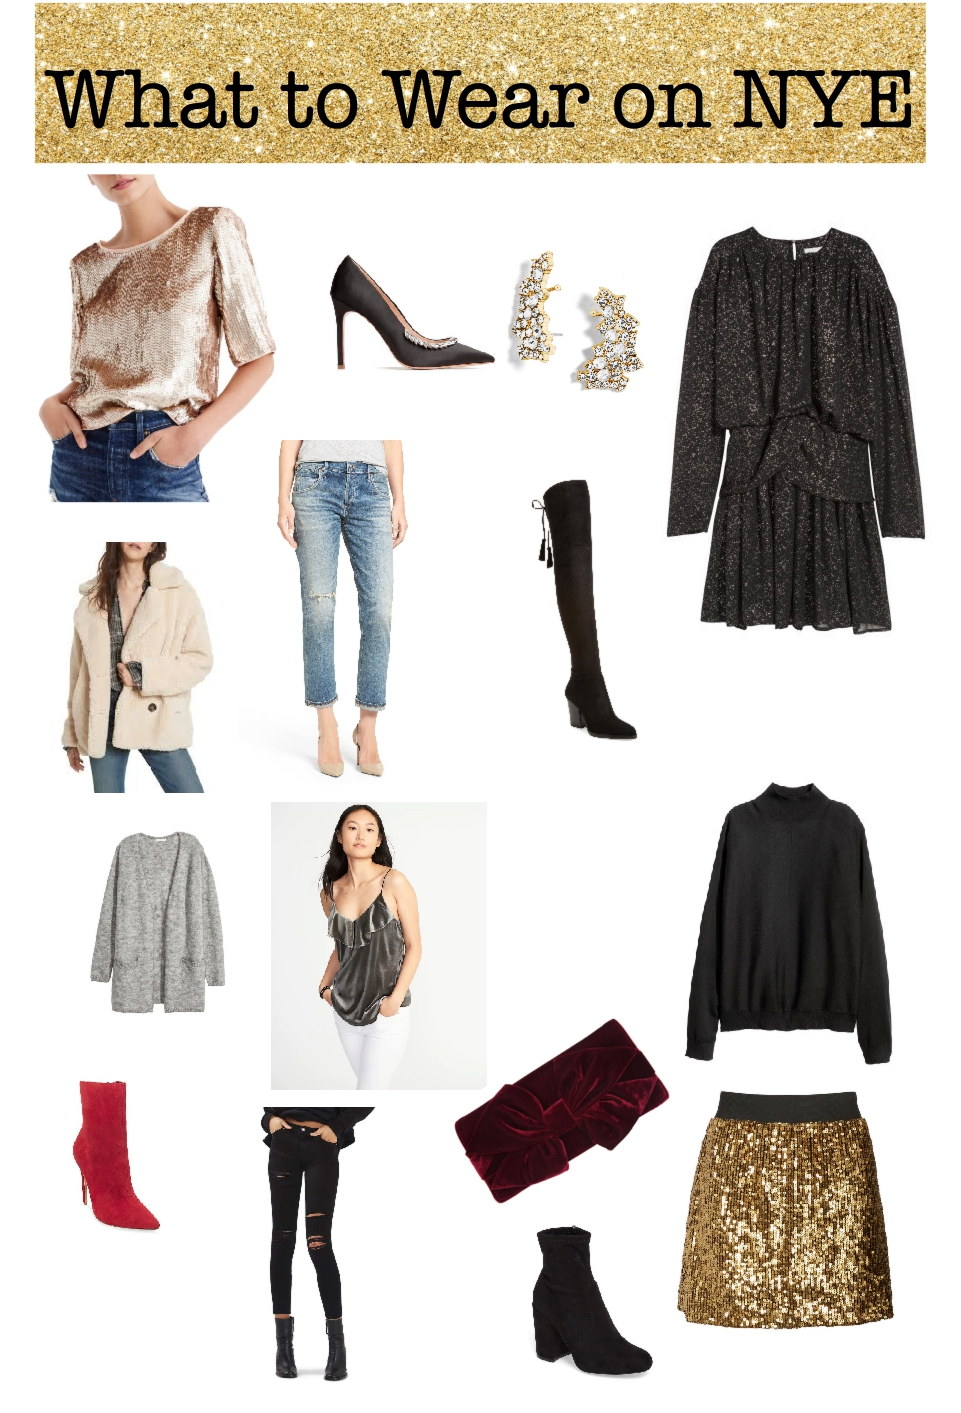 Easy New Year's Eve Outfit Ideas, what to wear on New Year's Eve 2017, NYE outfit, holiday outfit cold weather, sequins, glam